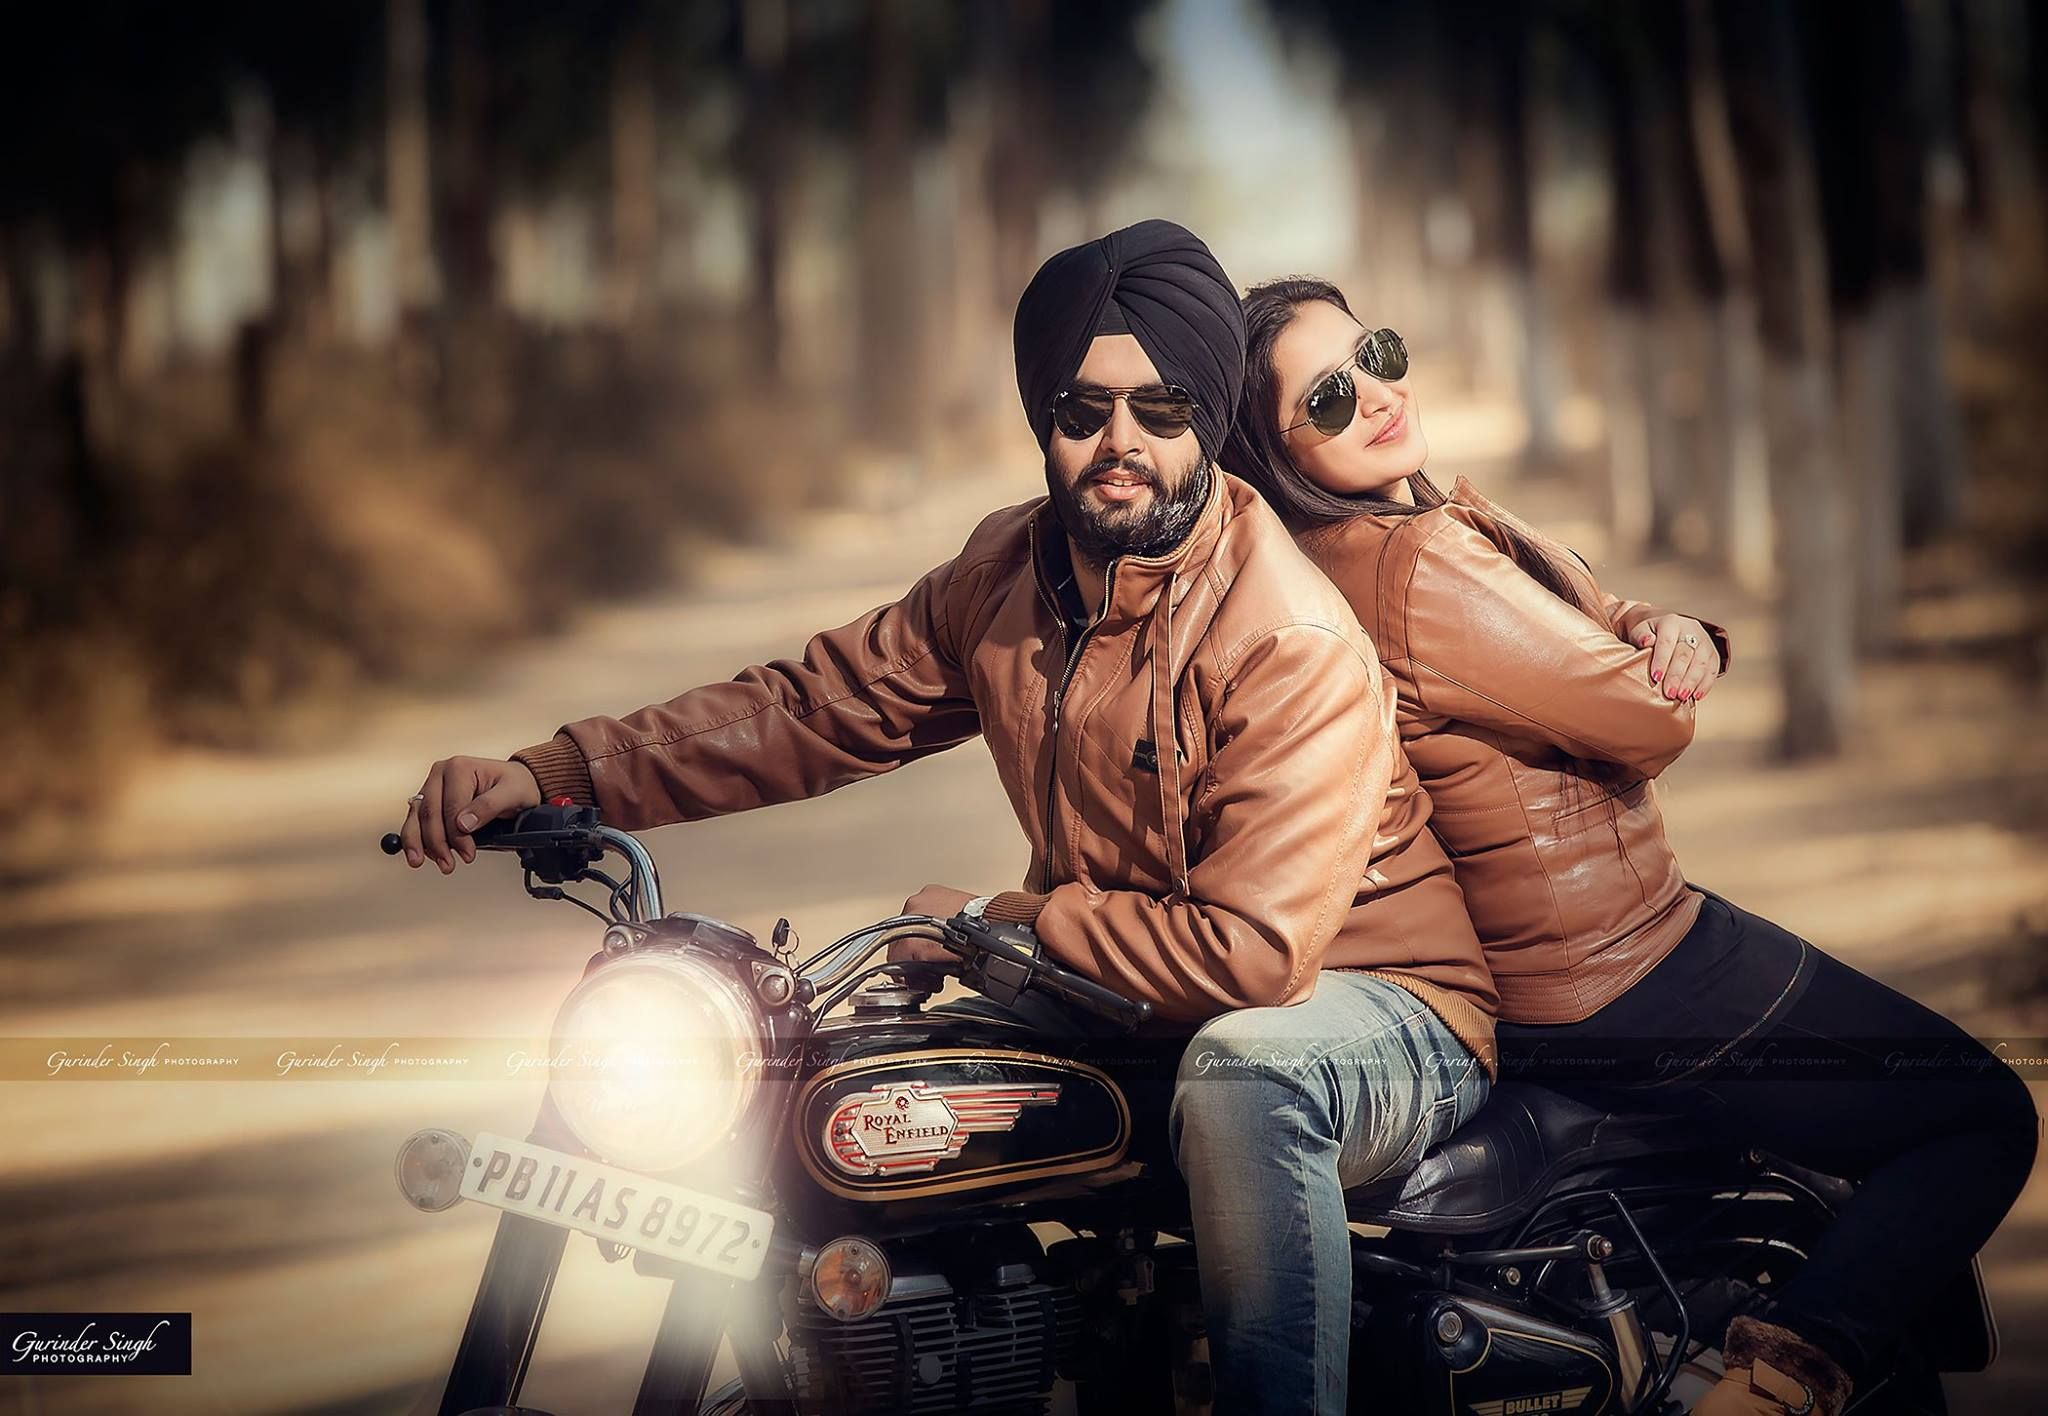 Bullet Bike Couple Amazing Punjabi Couple Pre Wedding India